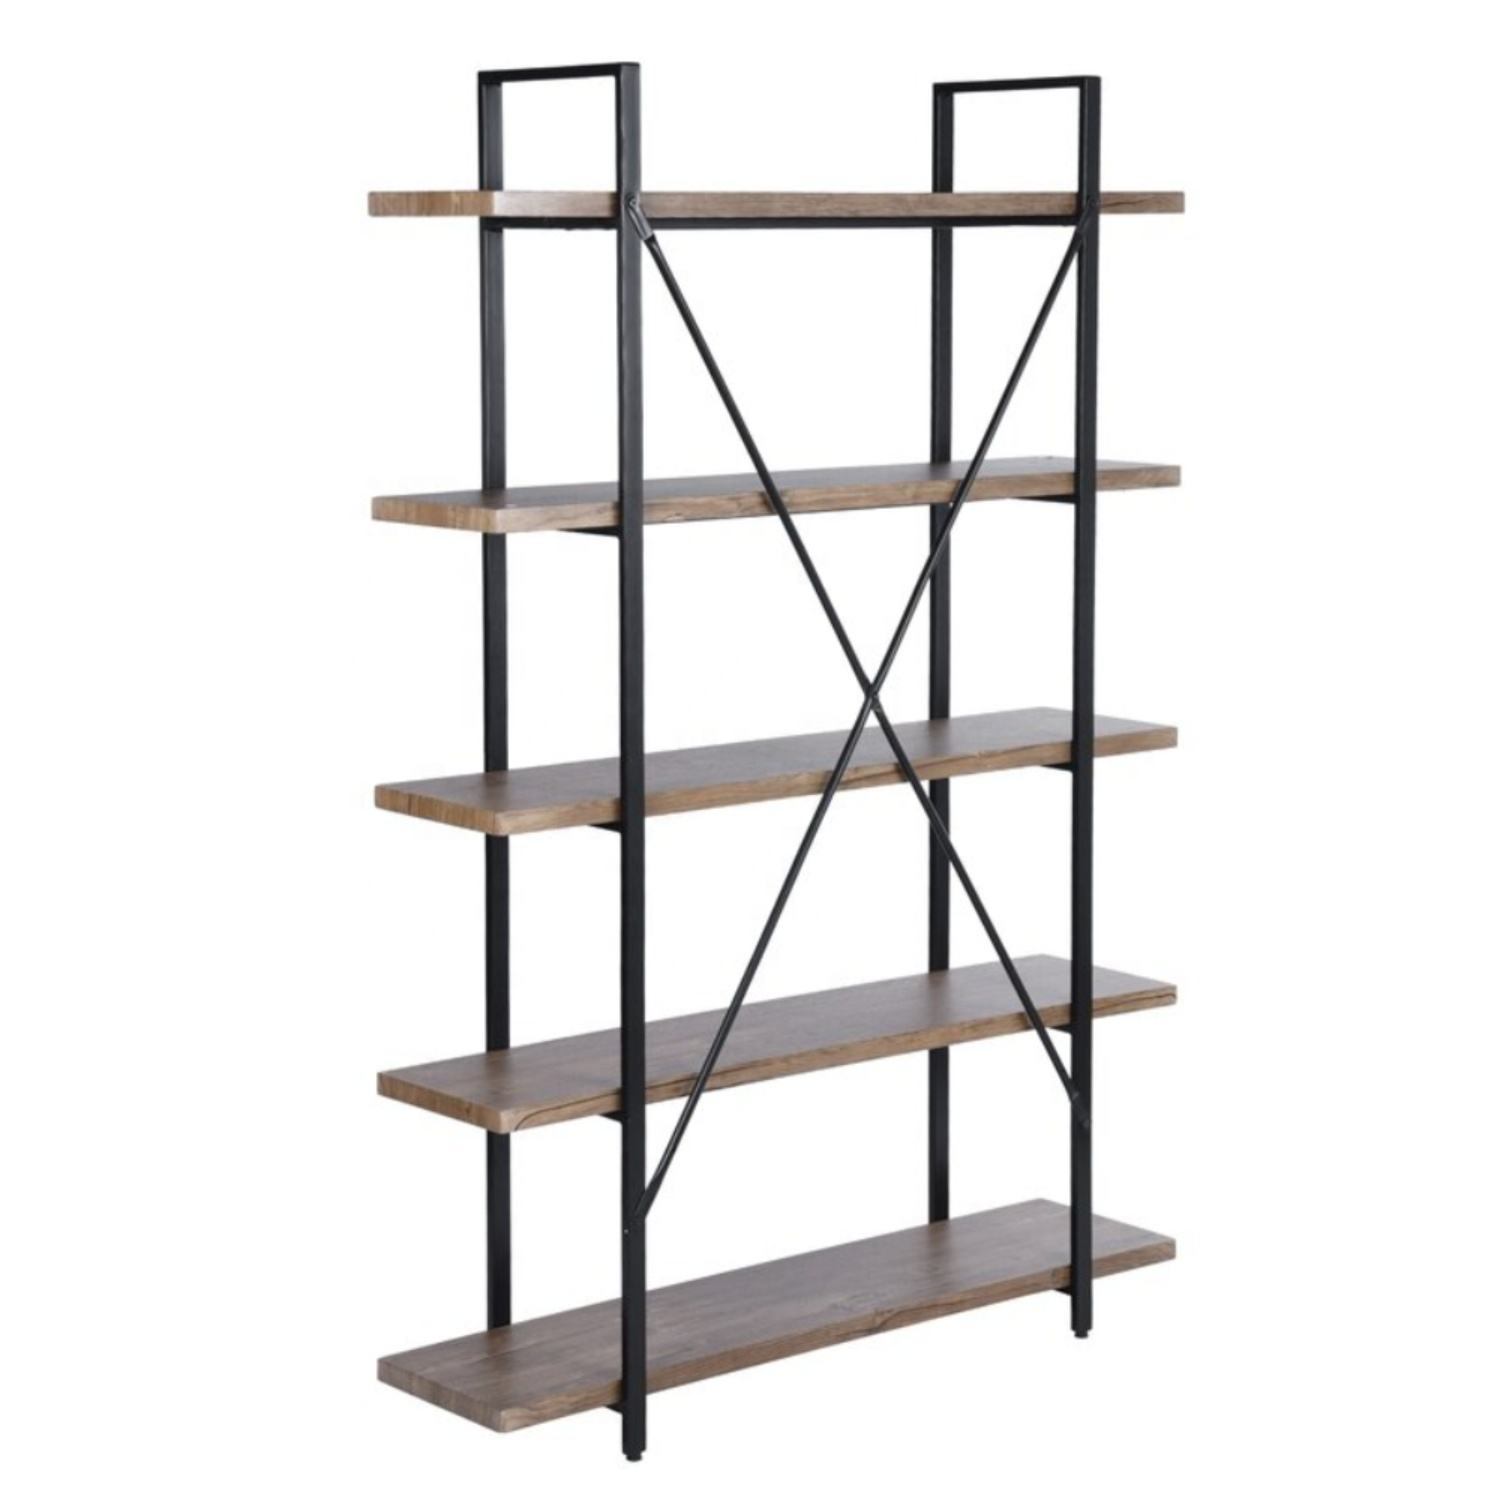 Bookshelf/ Bookcase / Display Shelf Industrial Design Wooden and Metal Solid Wood,solid Wood Living Room Furniture Modern